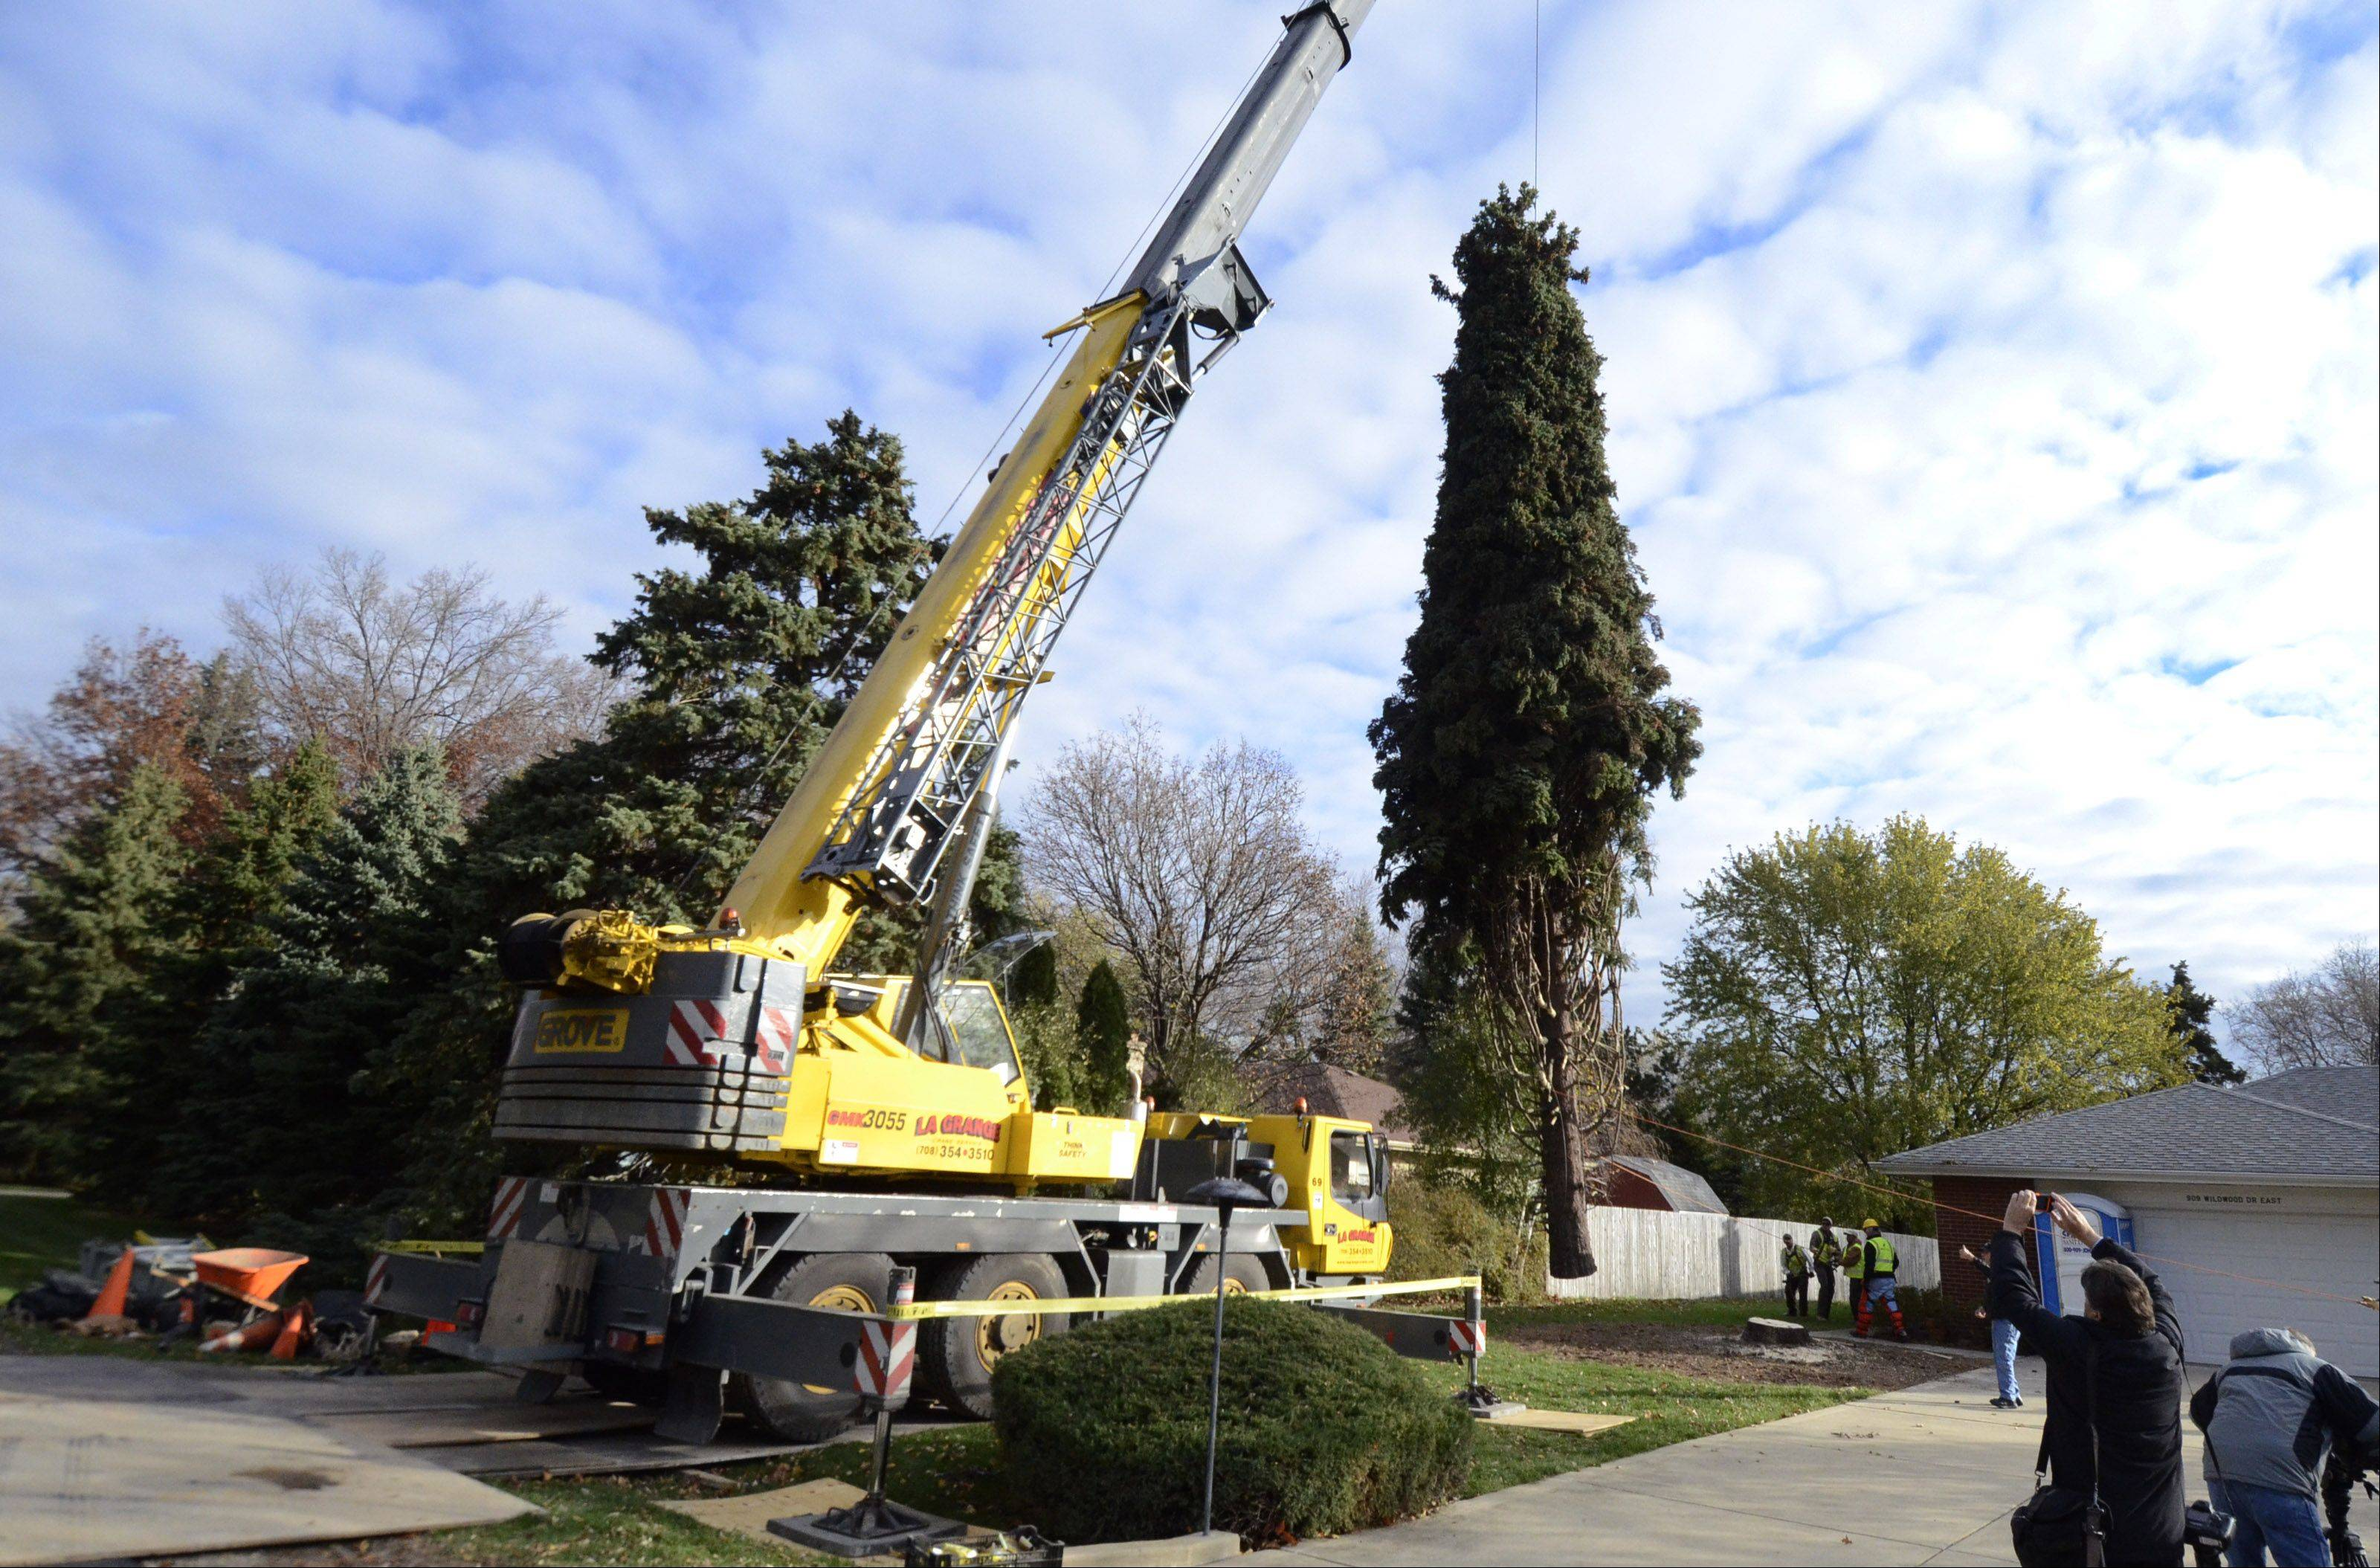 A 64-foot tall Colorado spruce tree selected to be the Christmas tree for Daly Plaza in Chicago is hoisted by a crane after being cut down Thursday morning at the Prospect Heights home of Barbara Theiszmann.